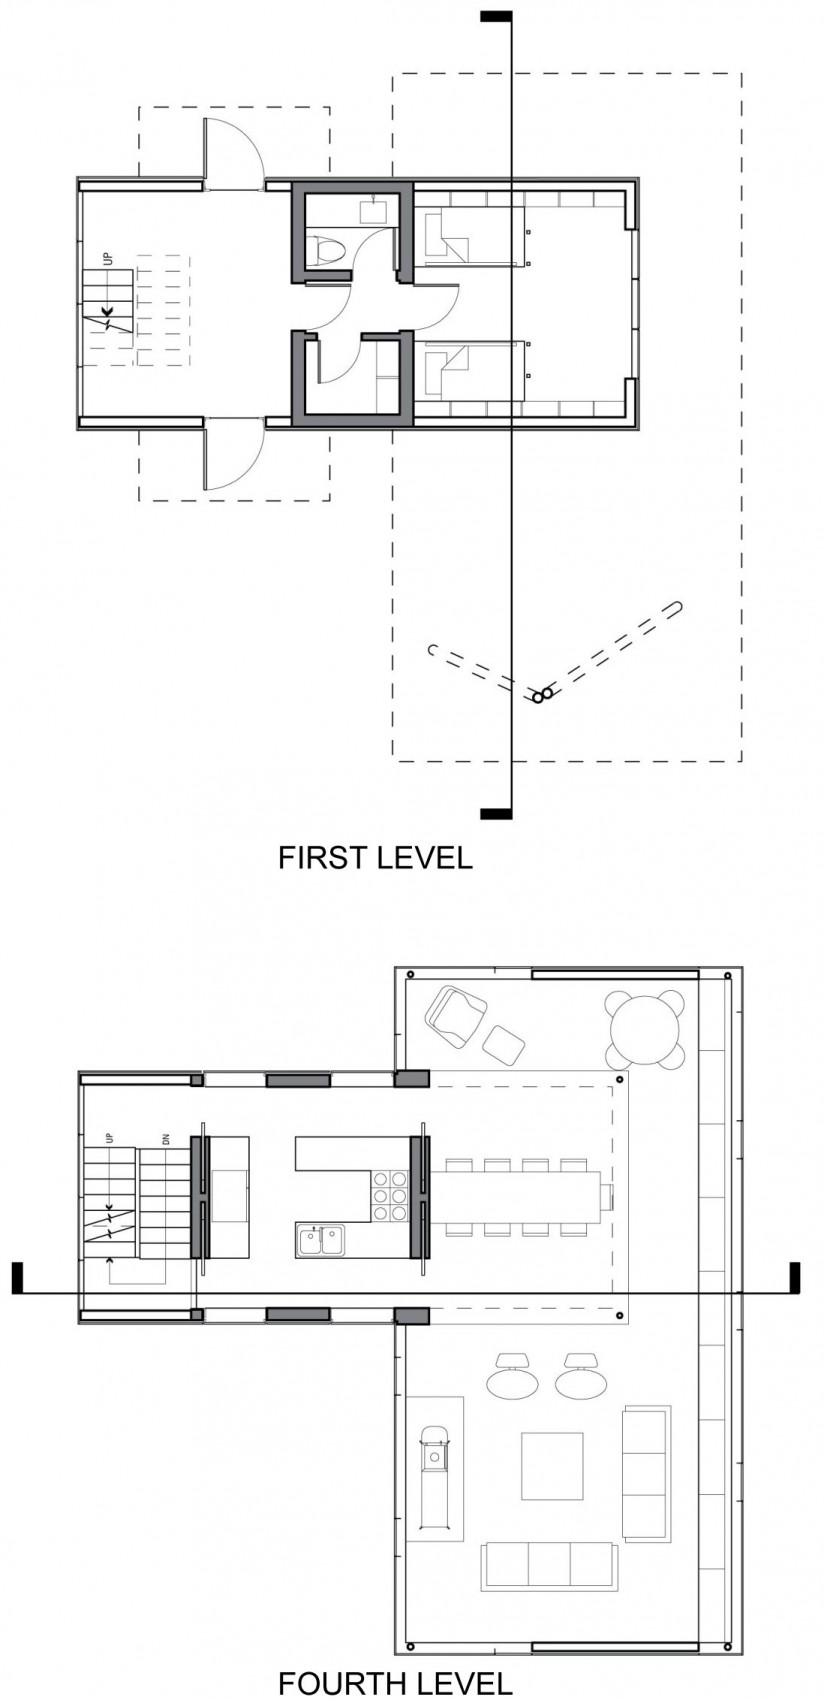 First & Forth Floor Plans, Unique Treetop Home in Upstate New York